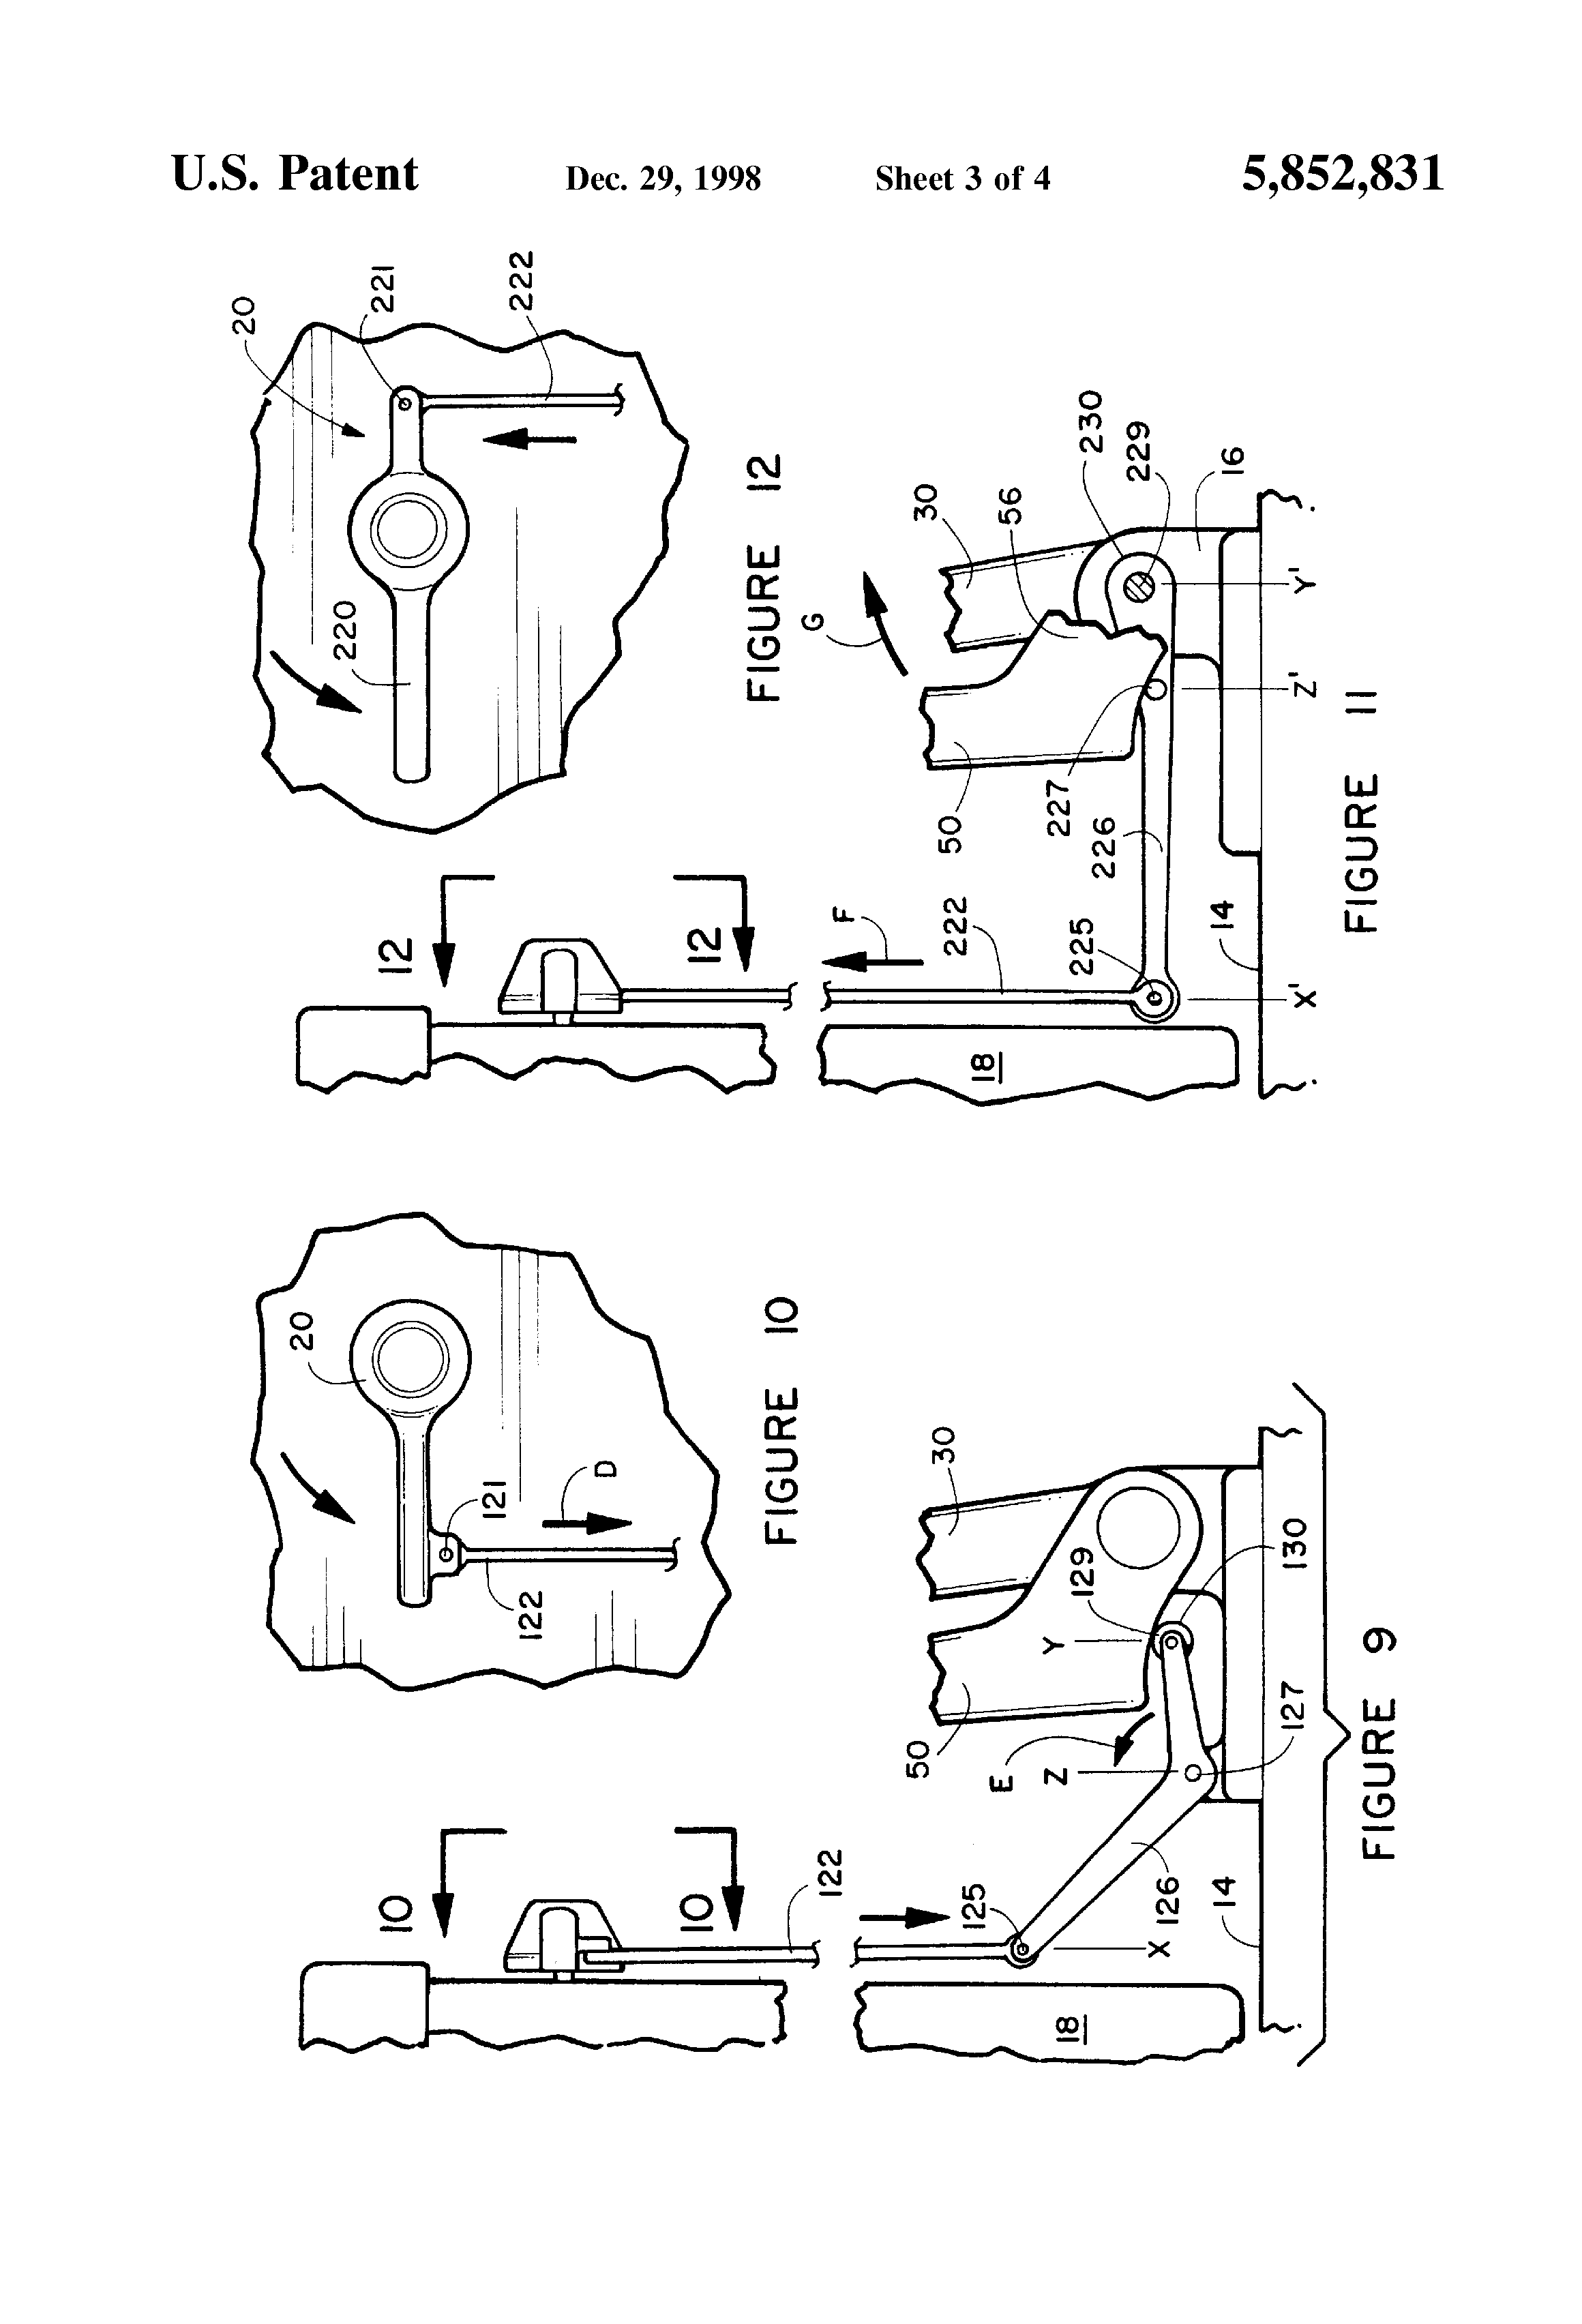 self closing toilet seat lid. Patent Drawing US5852831  Self closing toilet seat and lid Google Patents